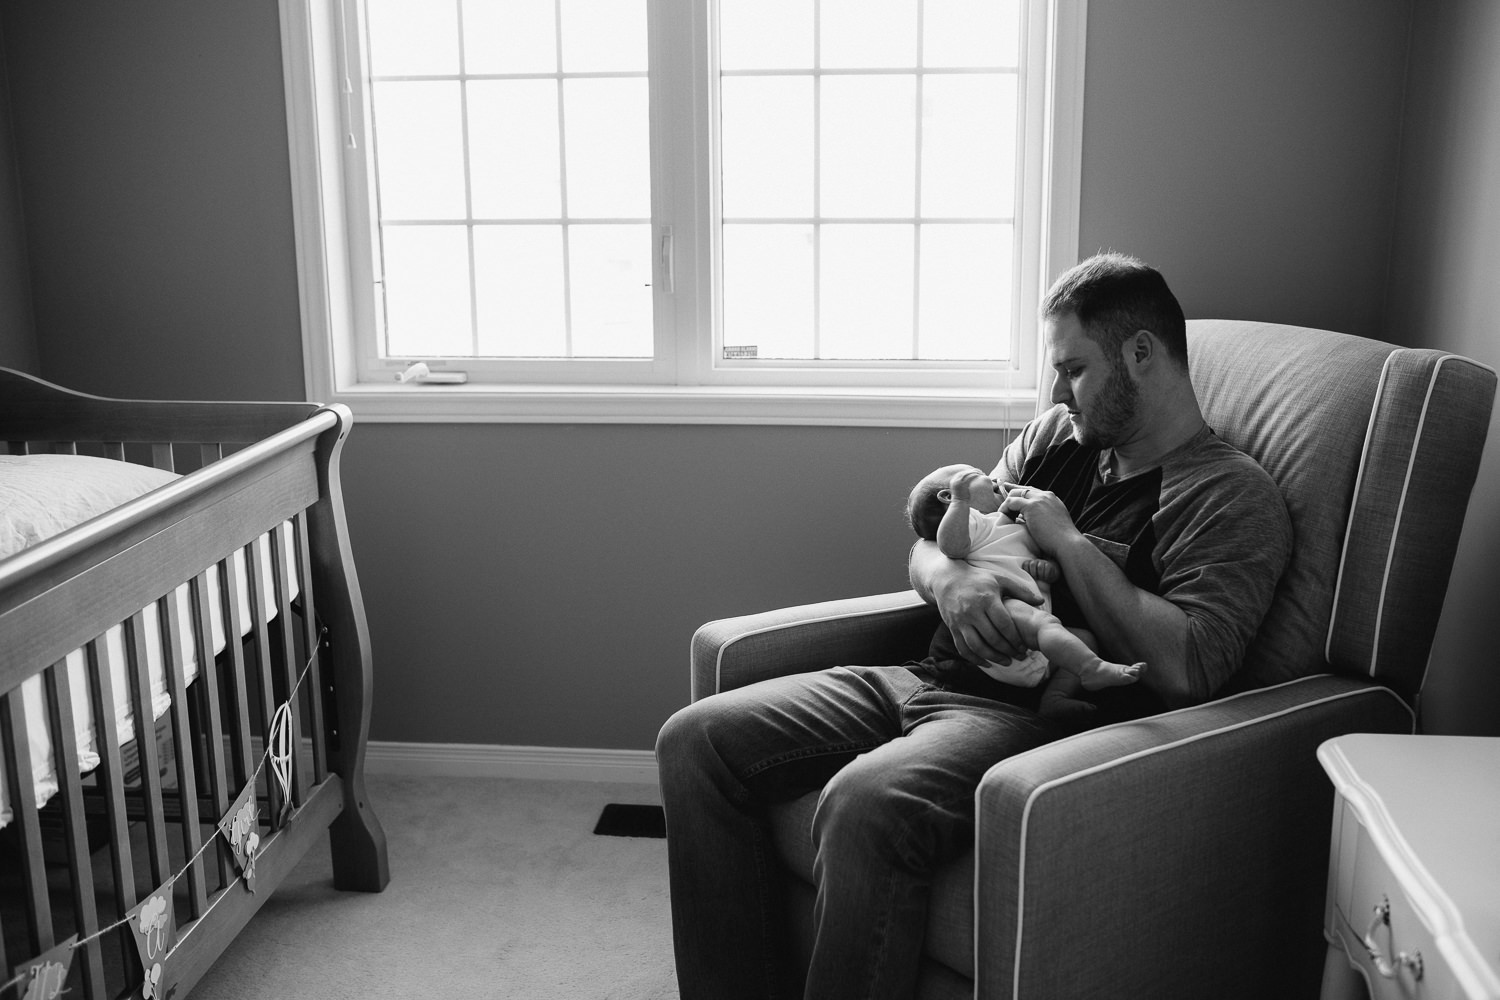 new dad holding 6 week old baby daughter in nursery glider - Stouffville lifestyle photos